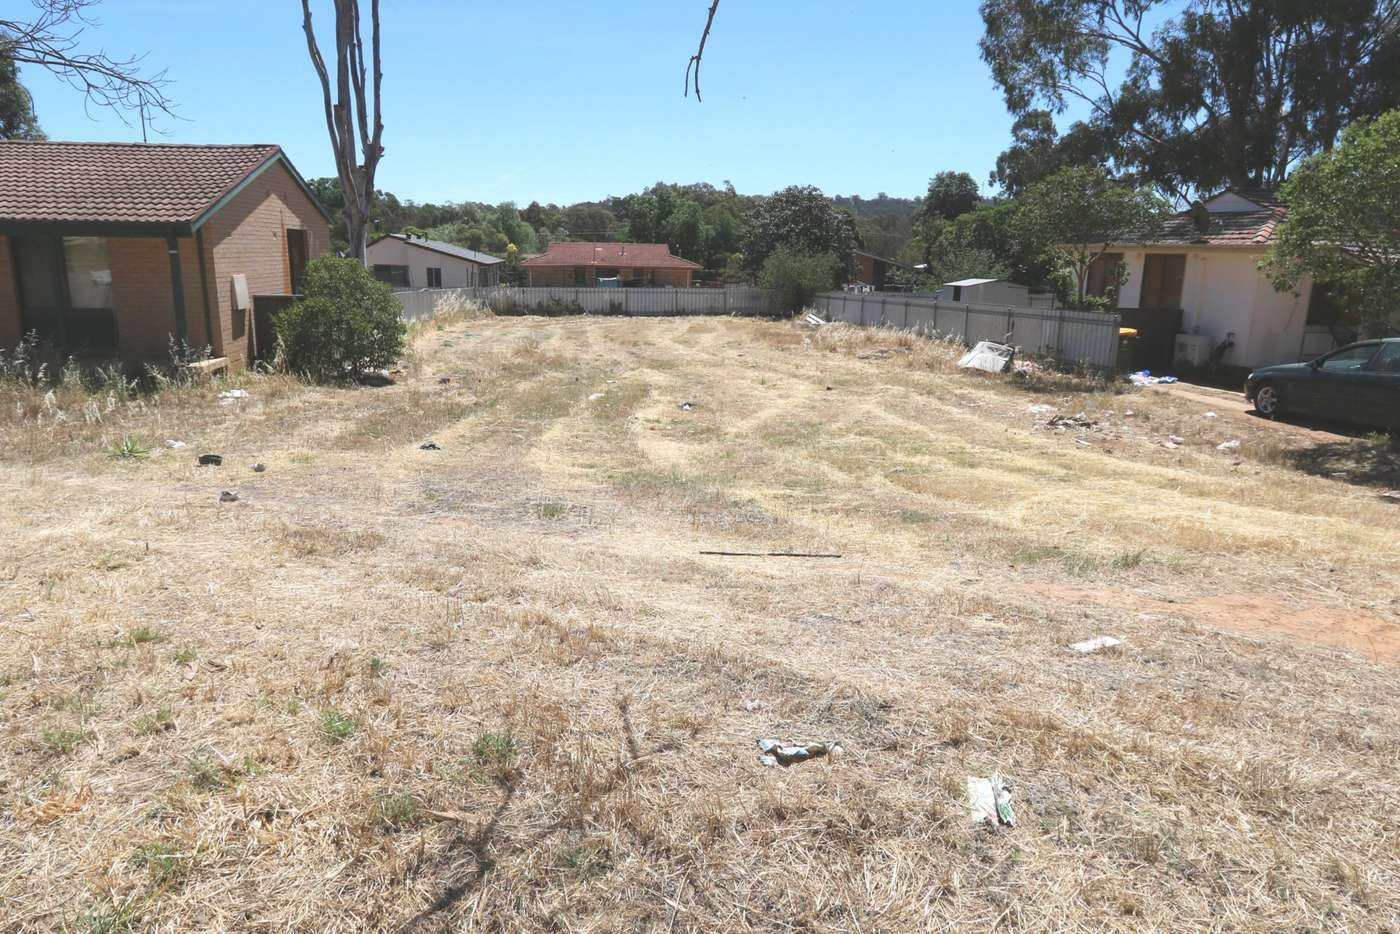 Main view of Homely residentialLand listing, 26 Callaghan Street, Ashmont NSW 2650